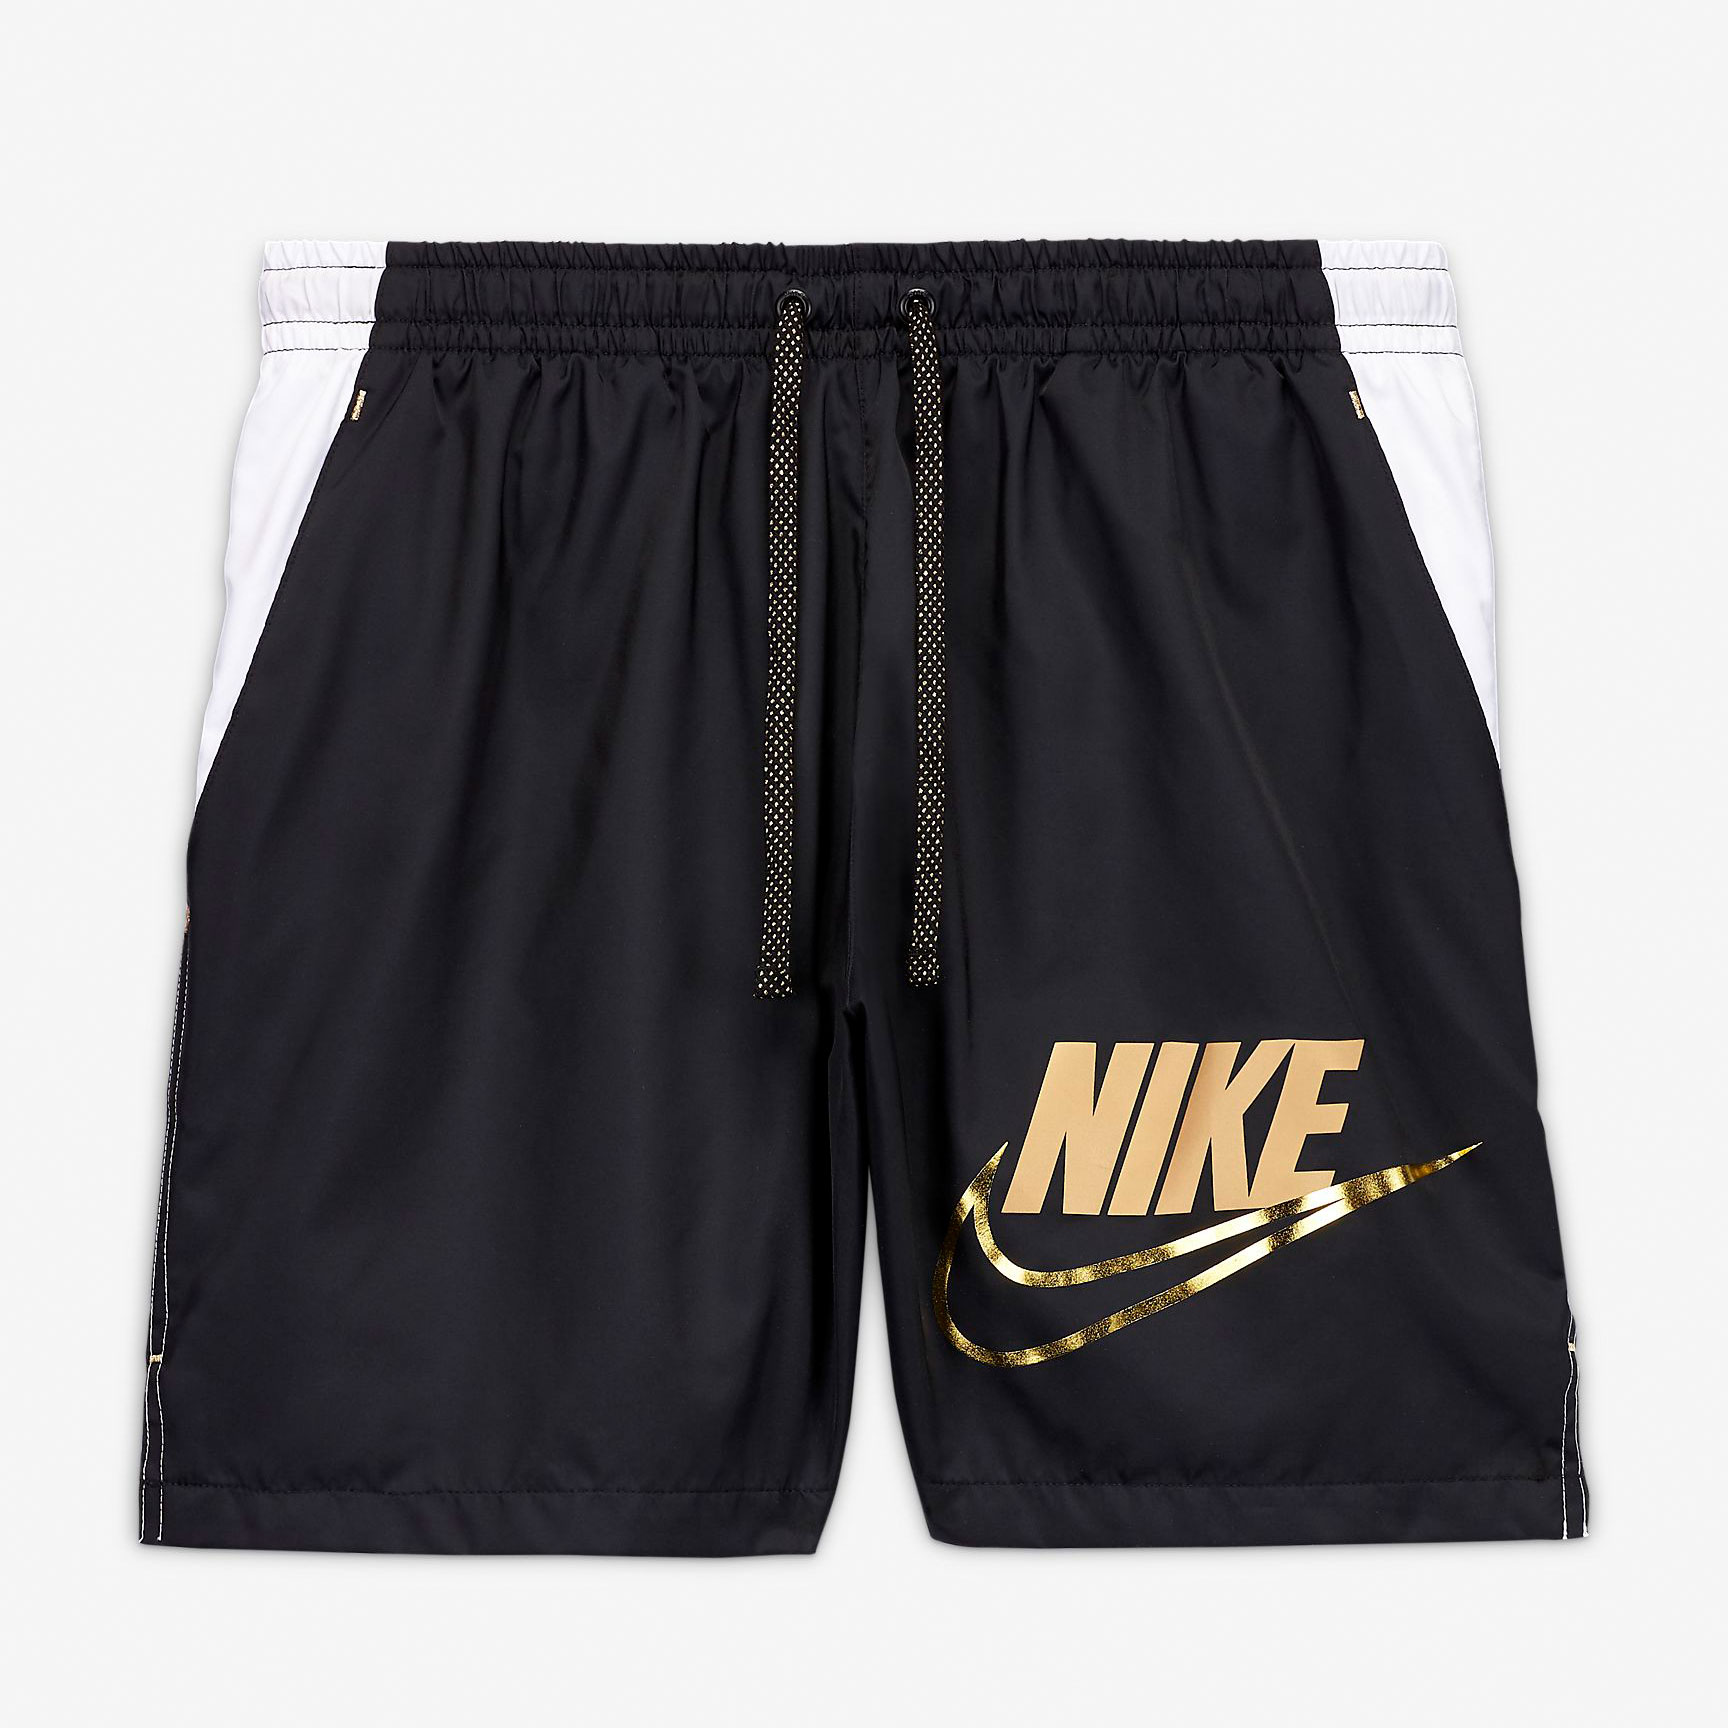 nike-shorts-black-white-gold-1